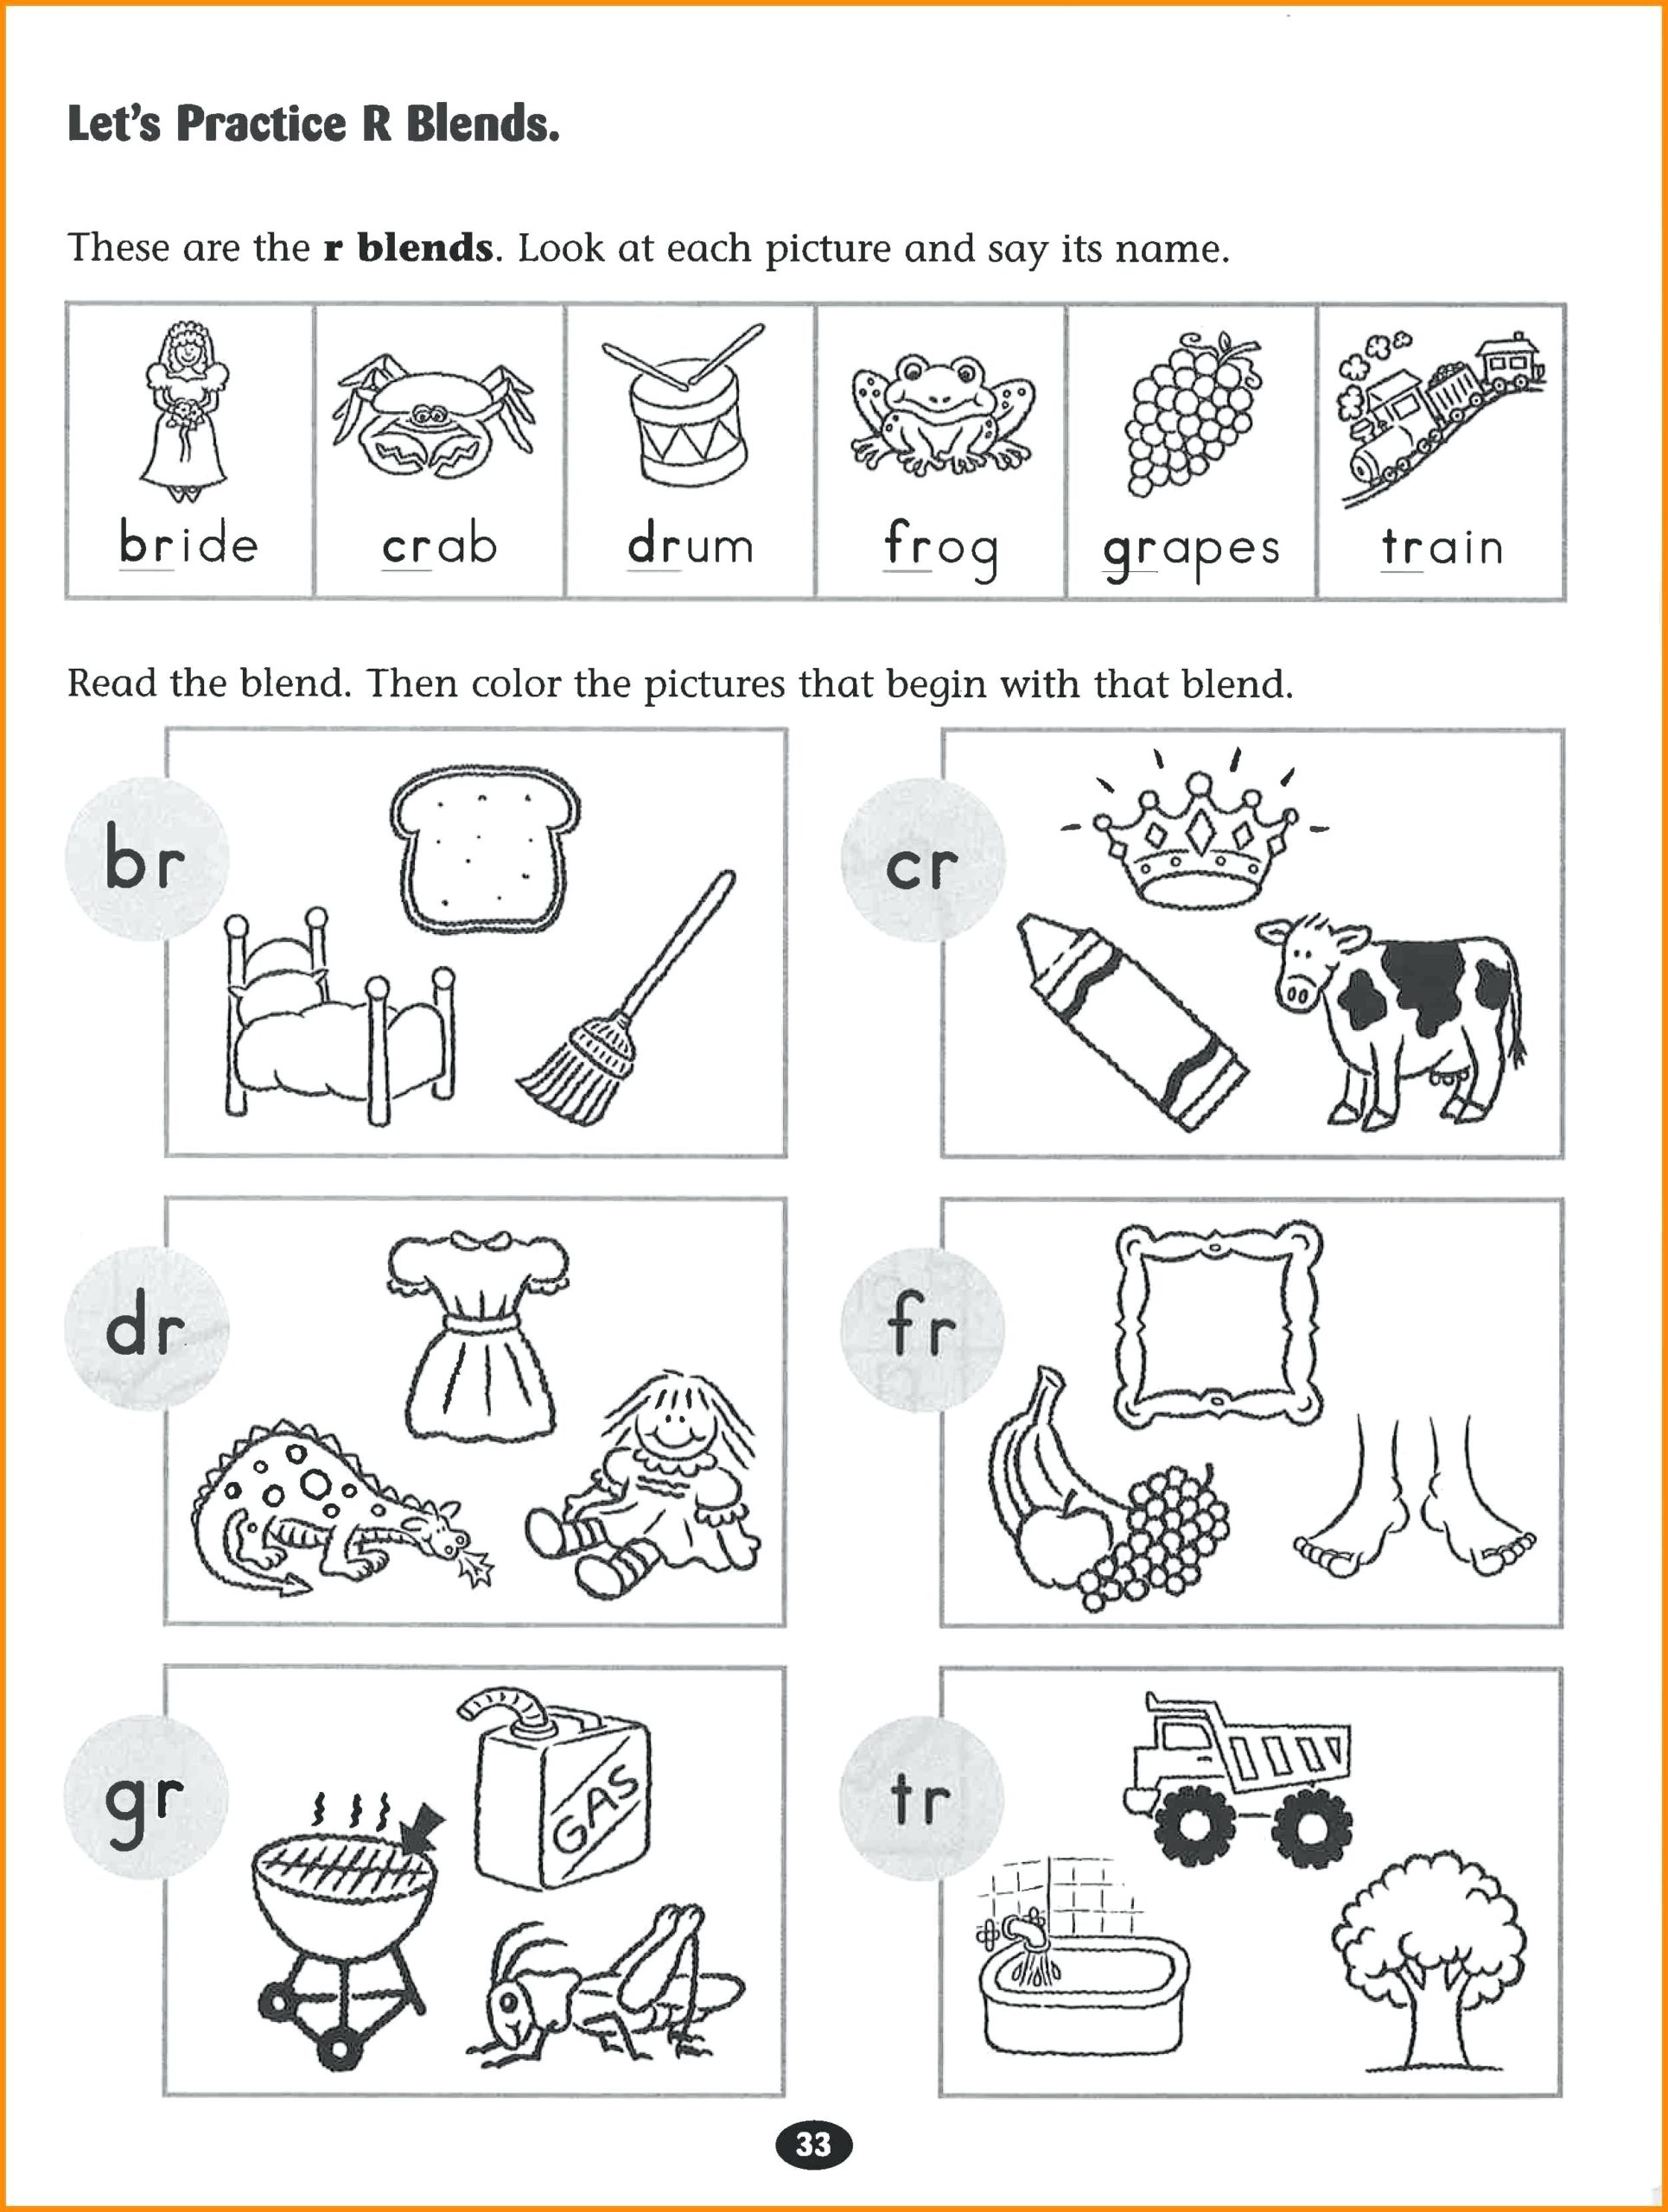 Worksheet : Free To Use Art Toddler Memory Cards Starfall pertaining to Alphabet Review Worksheets For Preschool